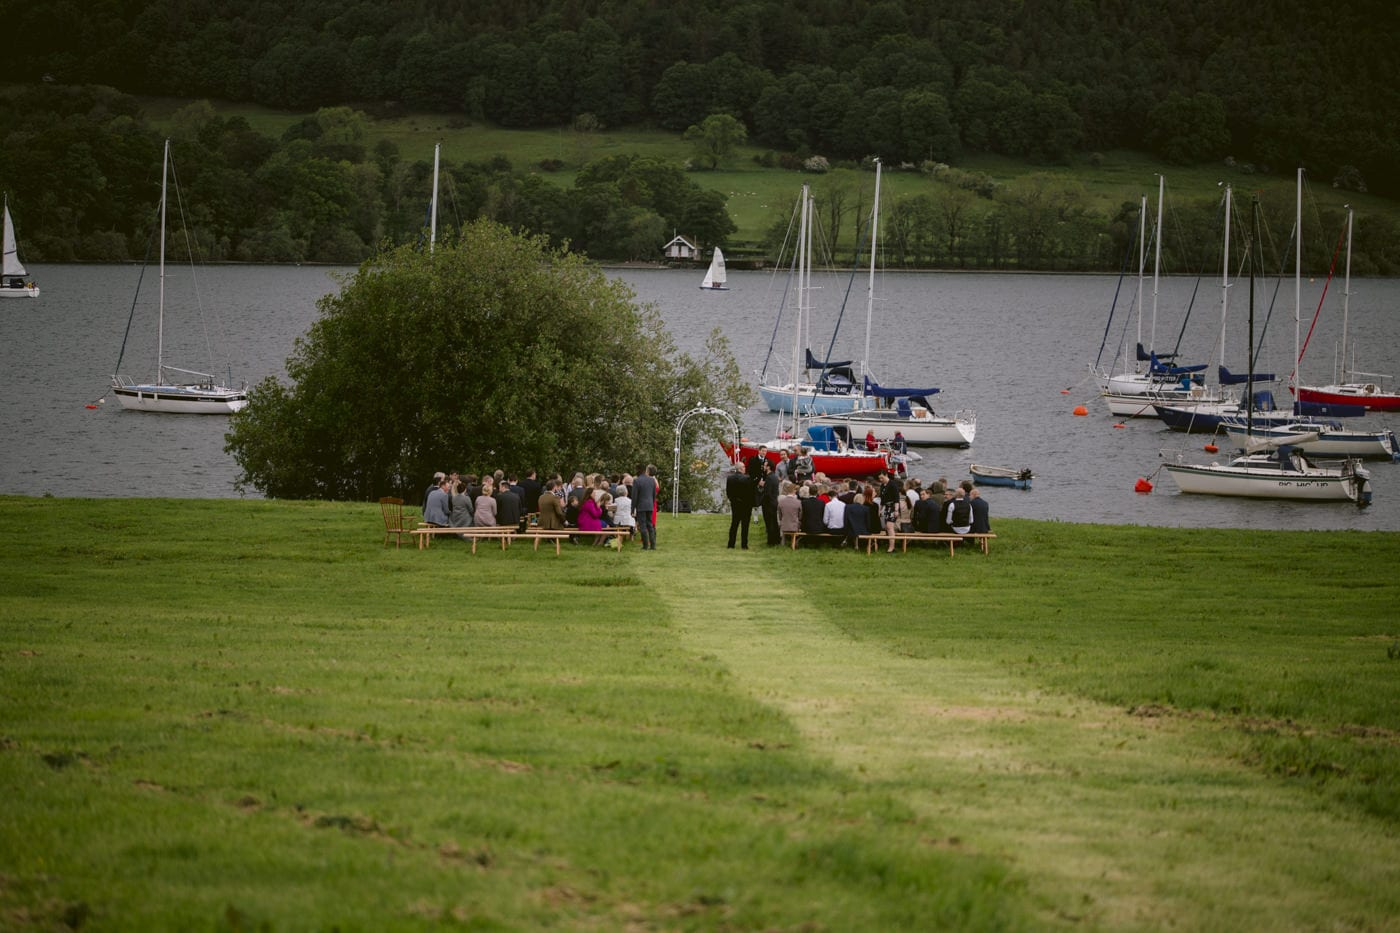 Guests at Wedding Venue by the Lakeside, Ready for Bride and Groom